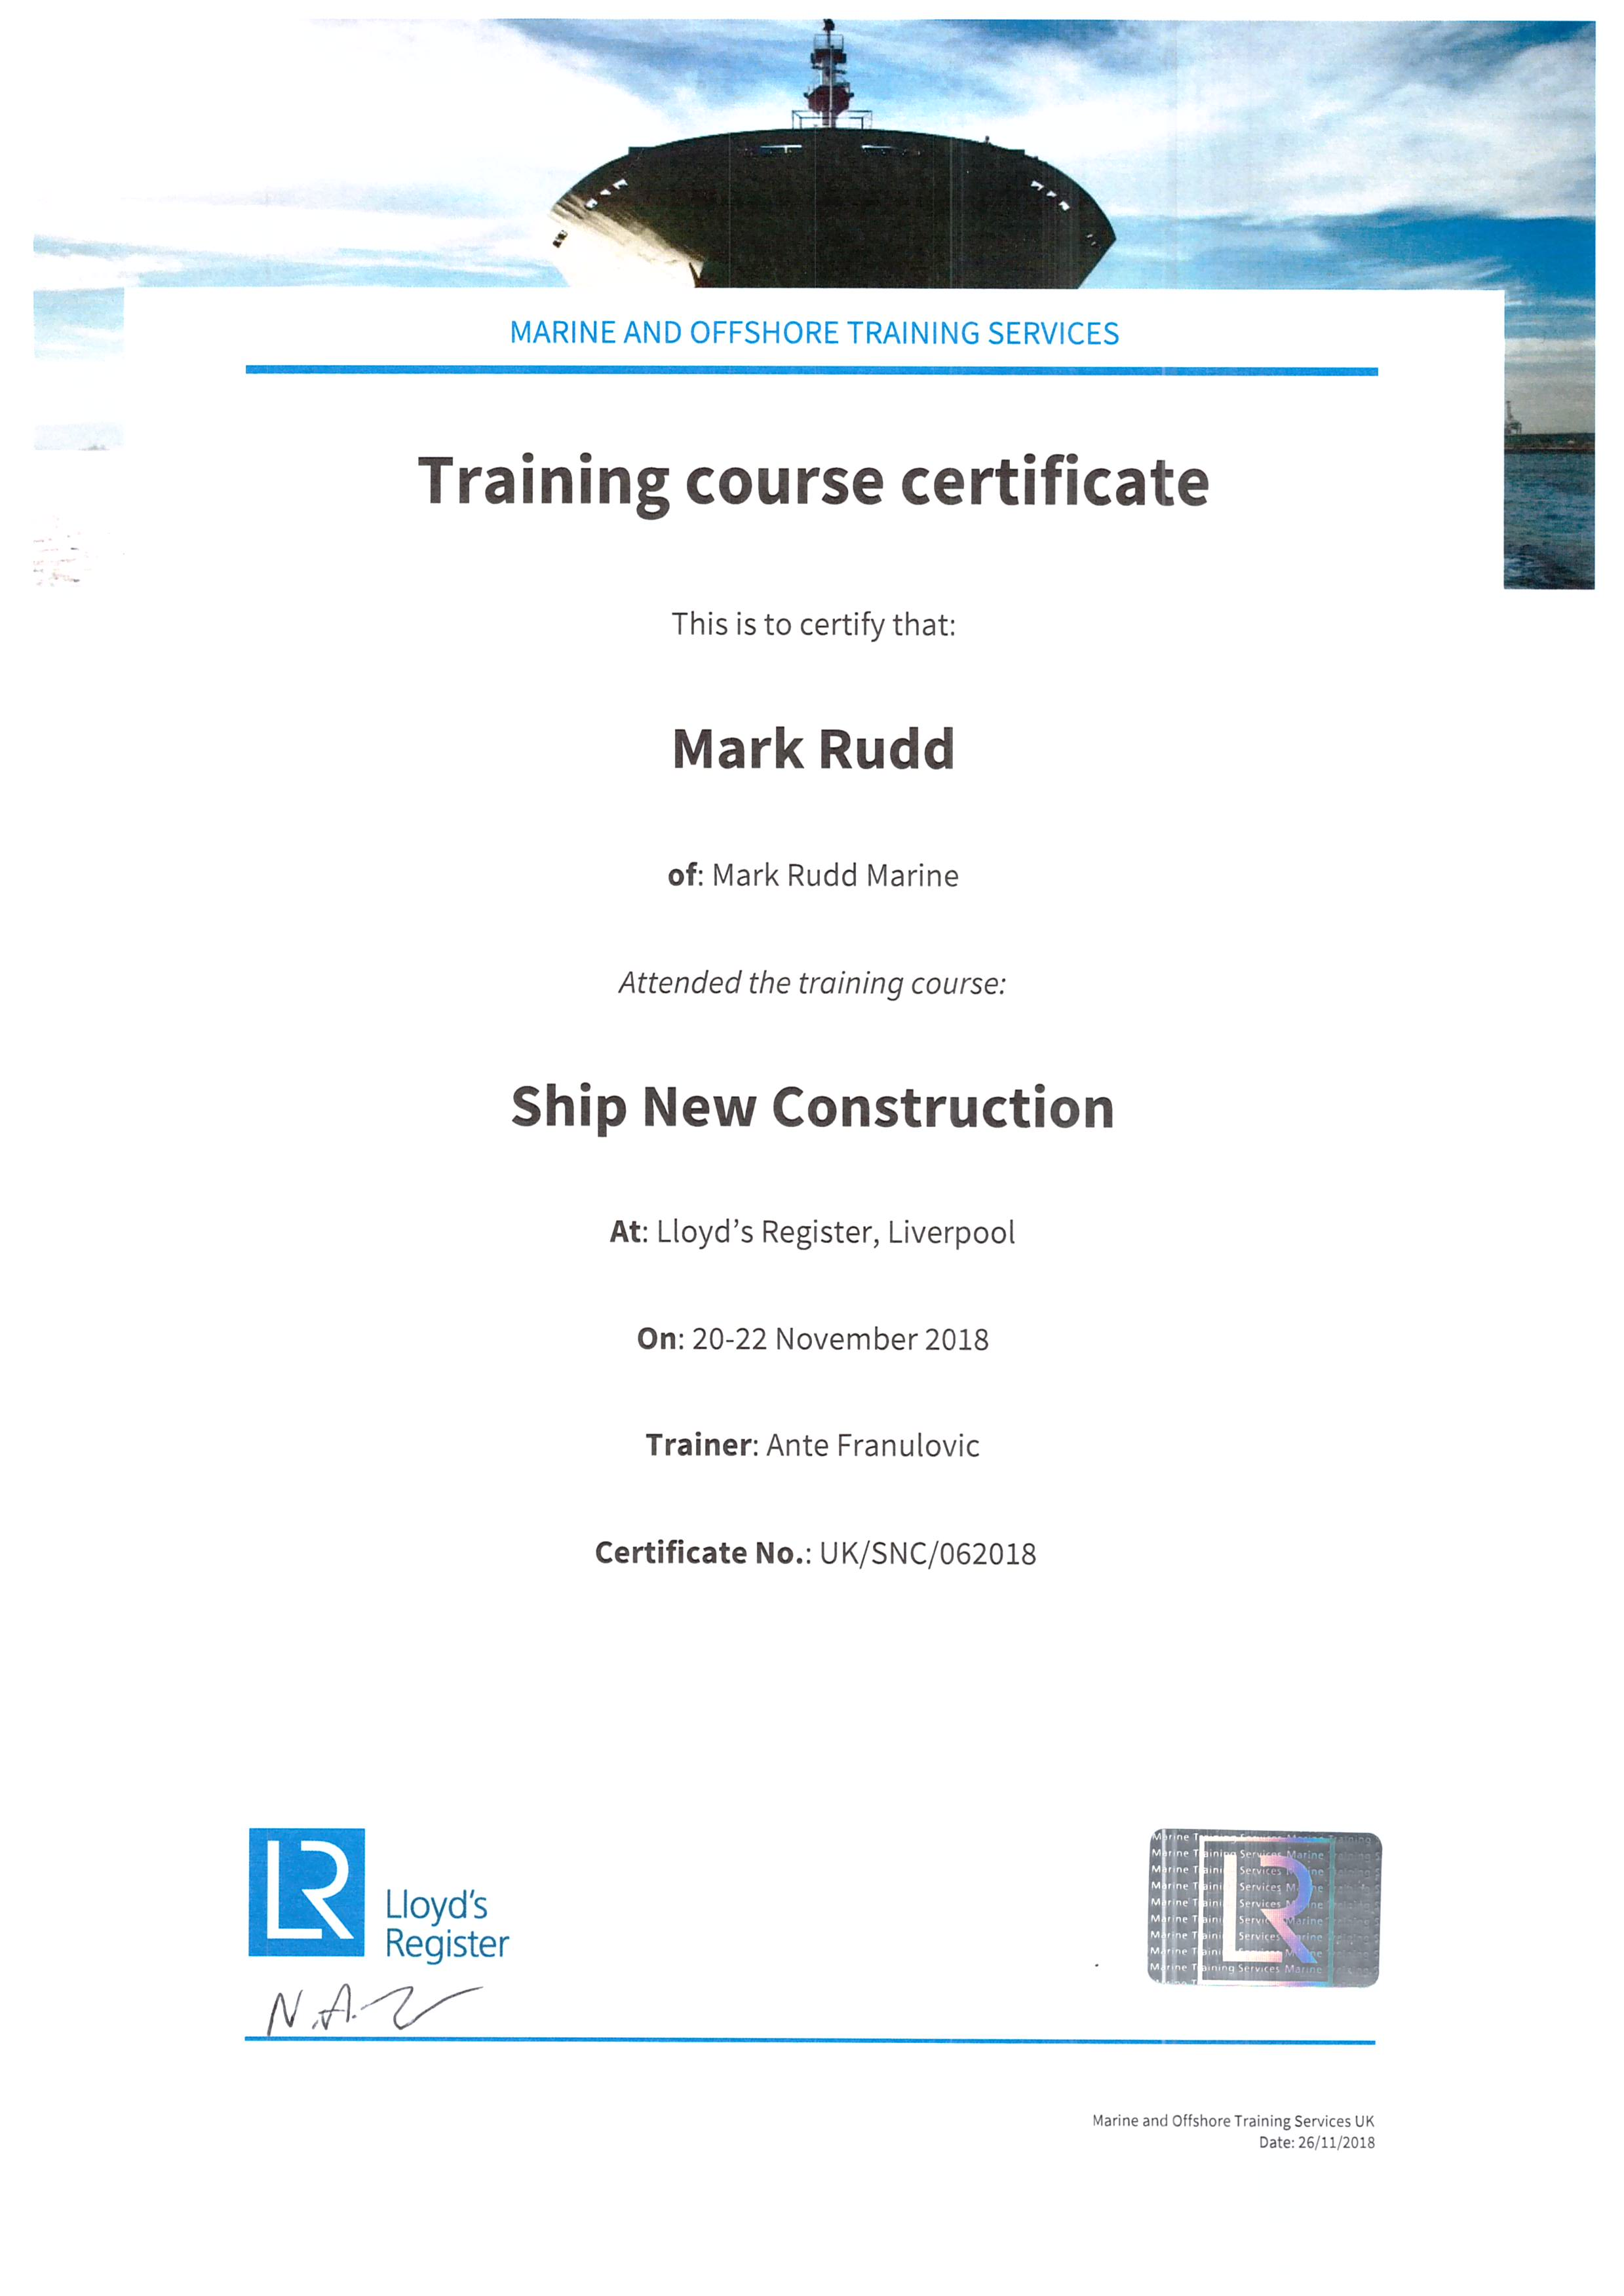 LR Ship New Construction Training Course.jpg